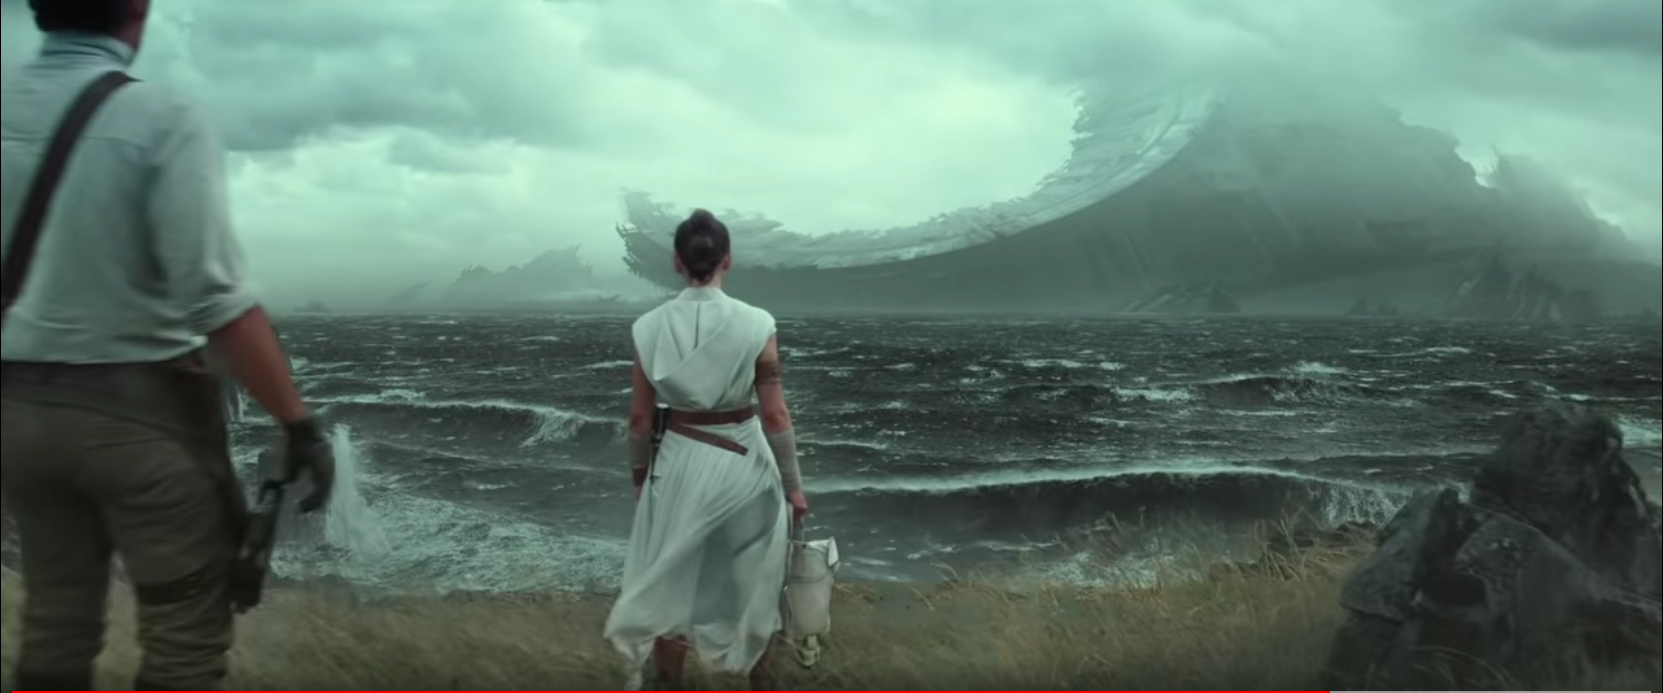 Screenshot_2019-04-12 Star Wars Episode IX – Teaser - YouTube(19).png